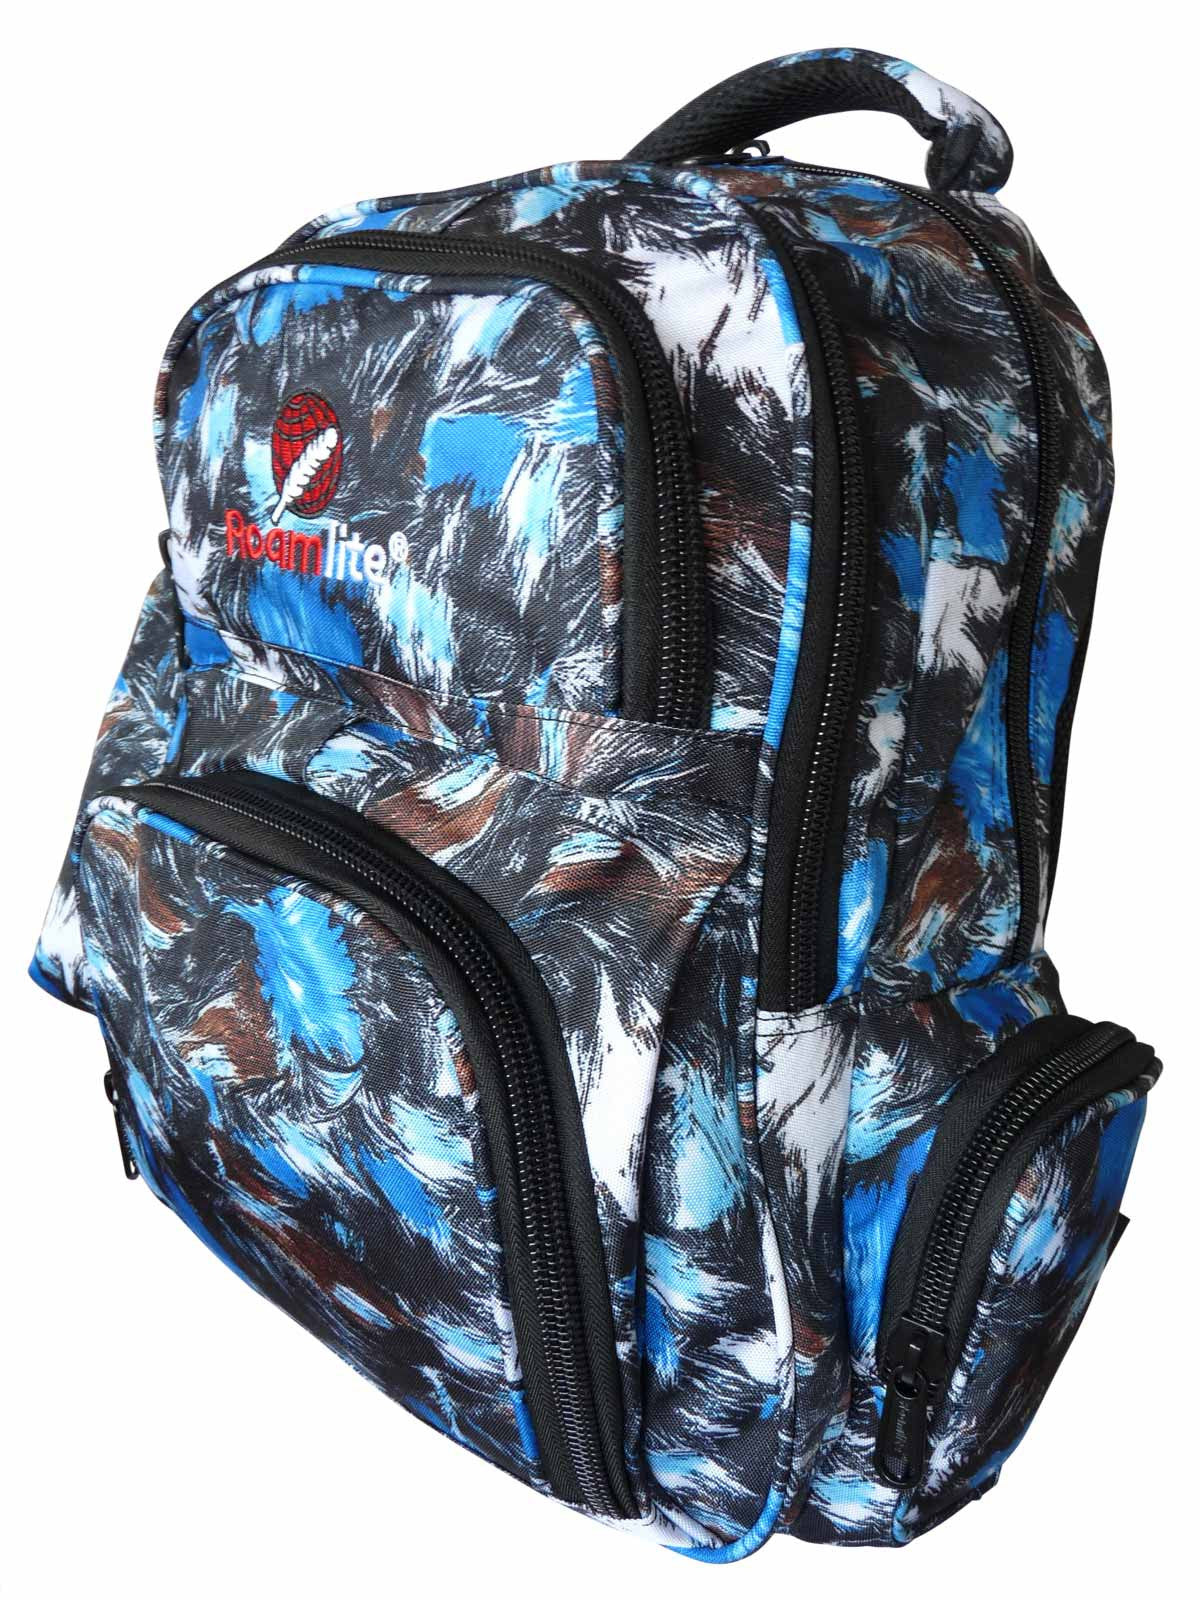 School Backpacks Bags RL88S Navy Blue Paint